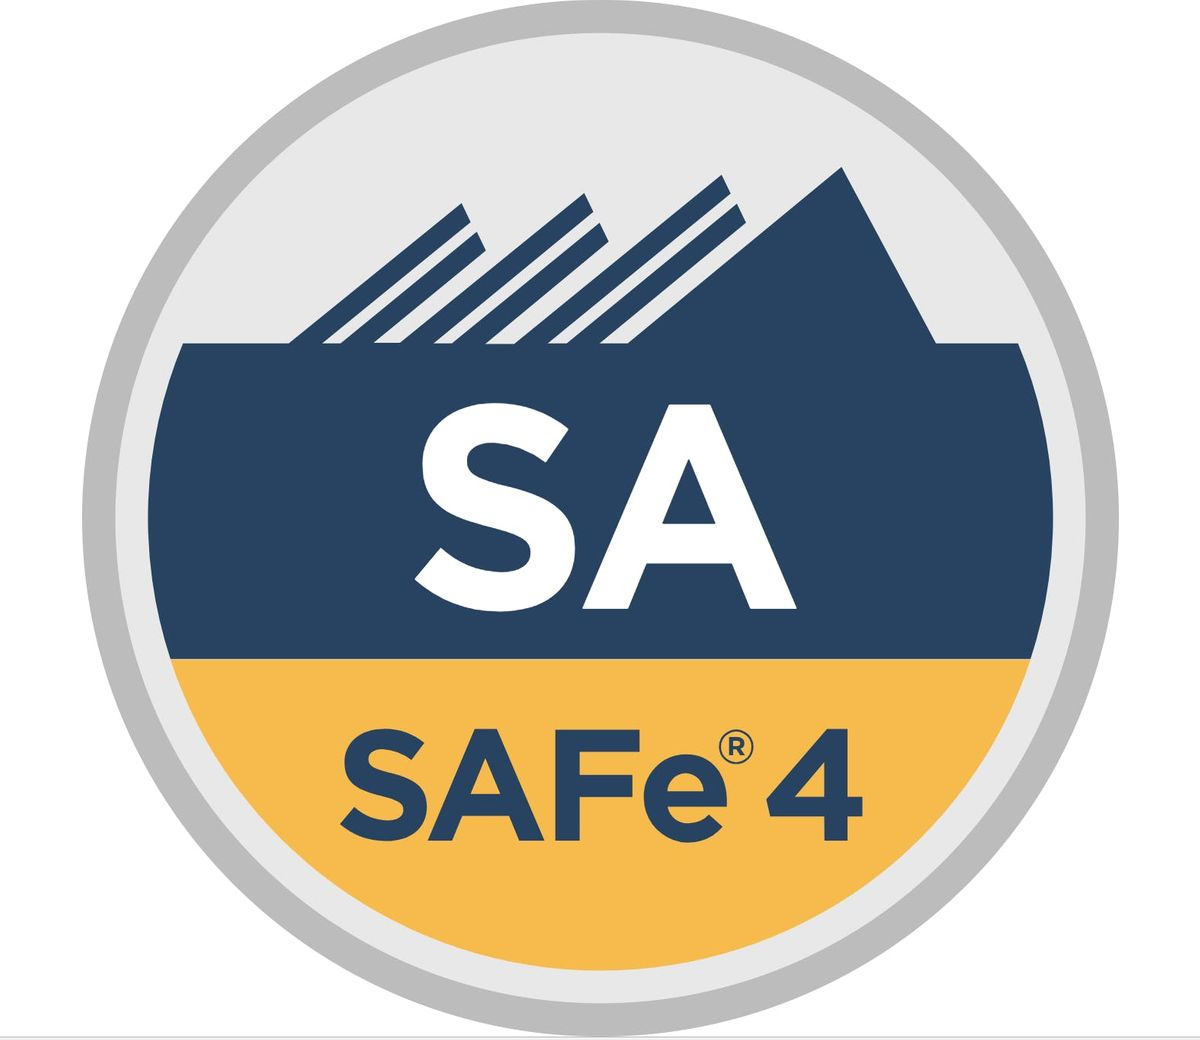 Leading Safe With Sa Certification At Cheyenne Mountain Conference